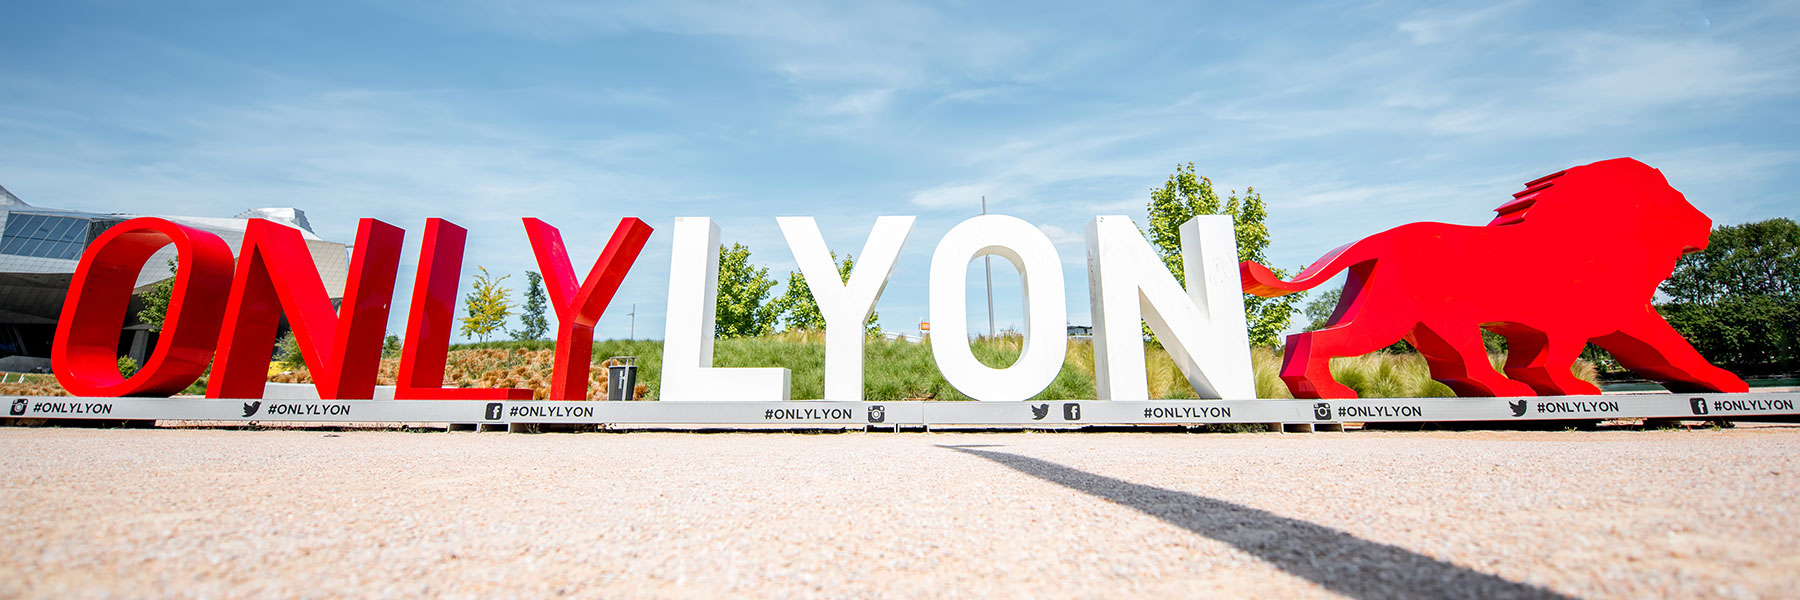 Only Lyon Large Text Sculpture